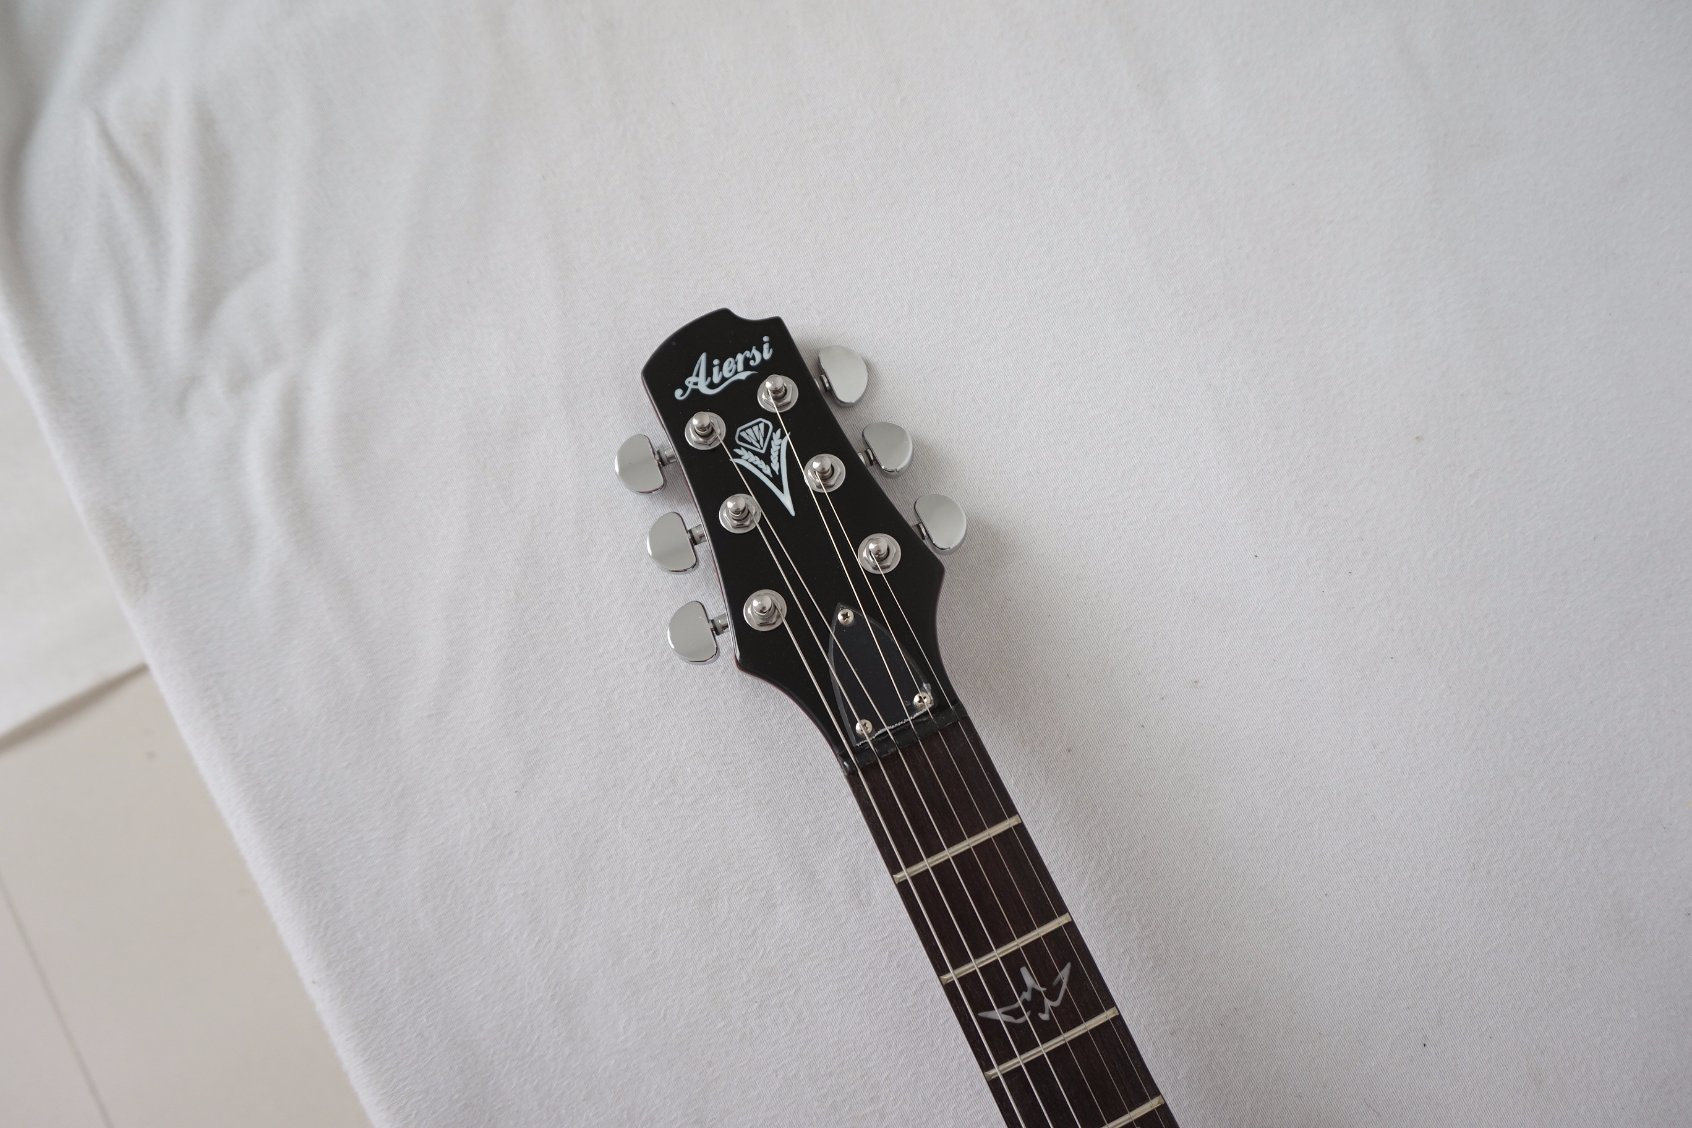 China Aiersi Electric Guitar With Parts Photos Pictures